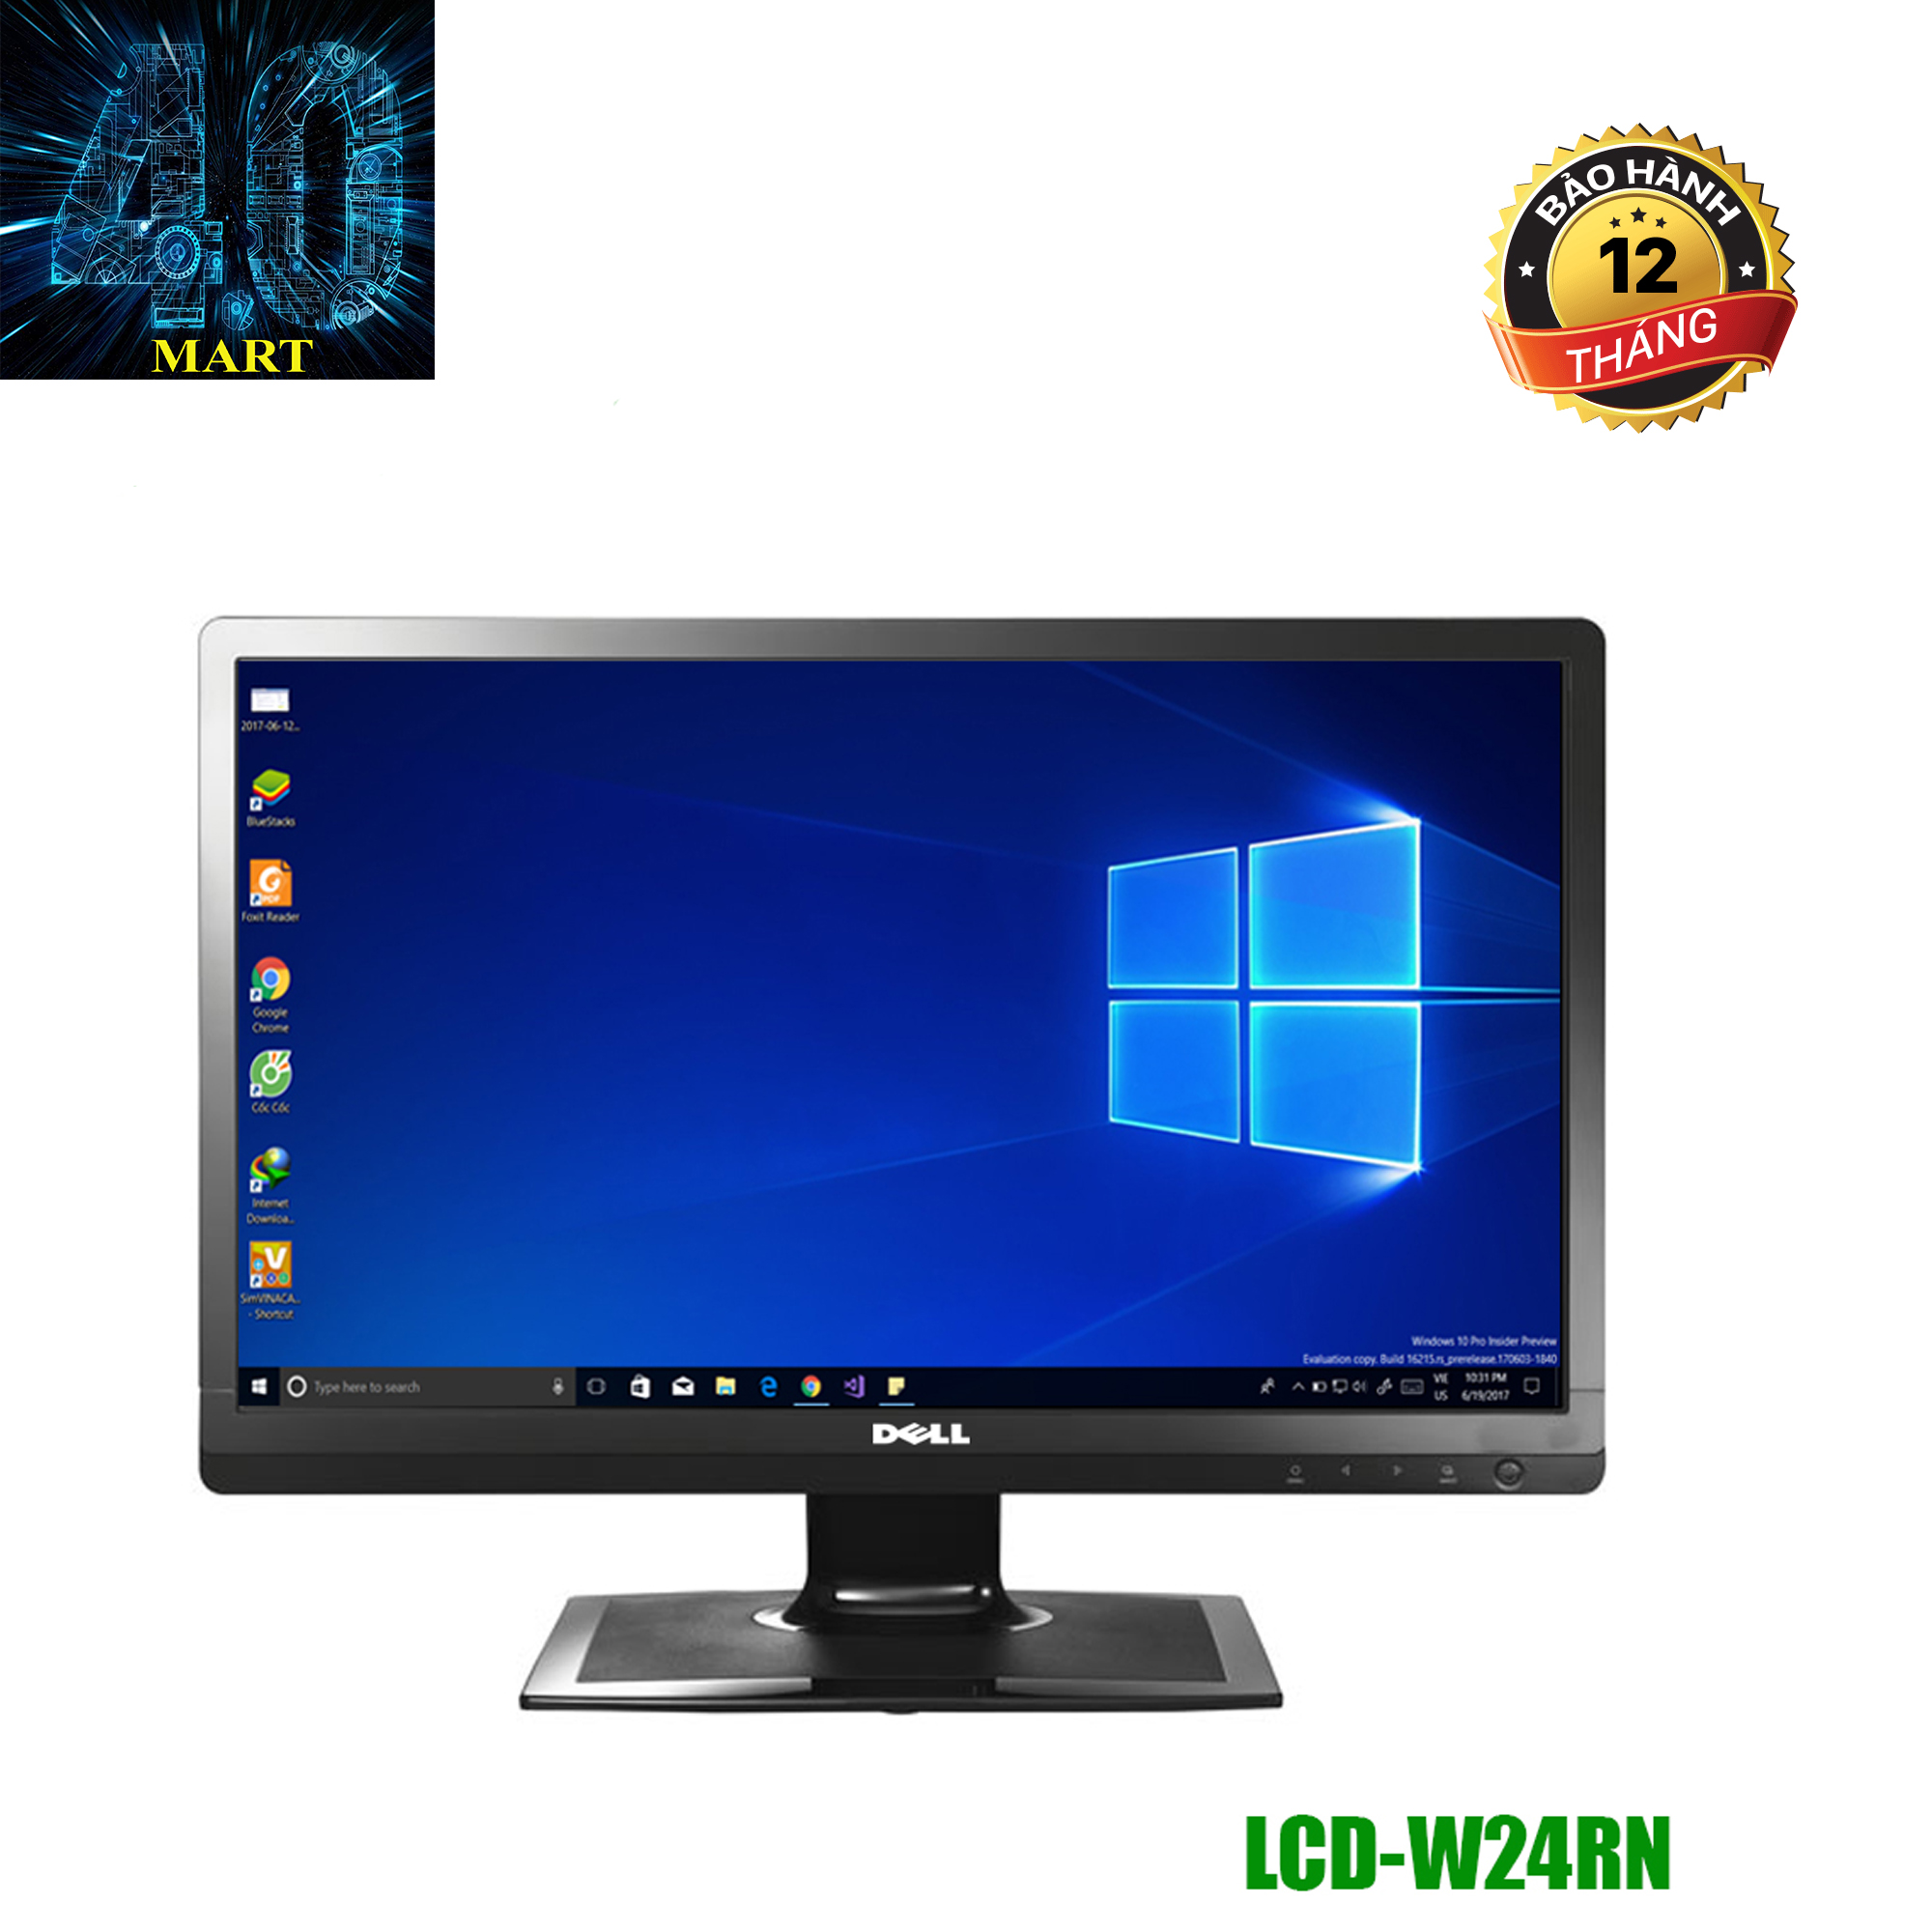 Màn Hình Dell W24RN (24″/FHD/LED/HDMI+DVI+VGA/300 cd/m²/5ms)-FULL BOX